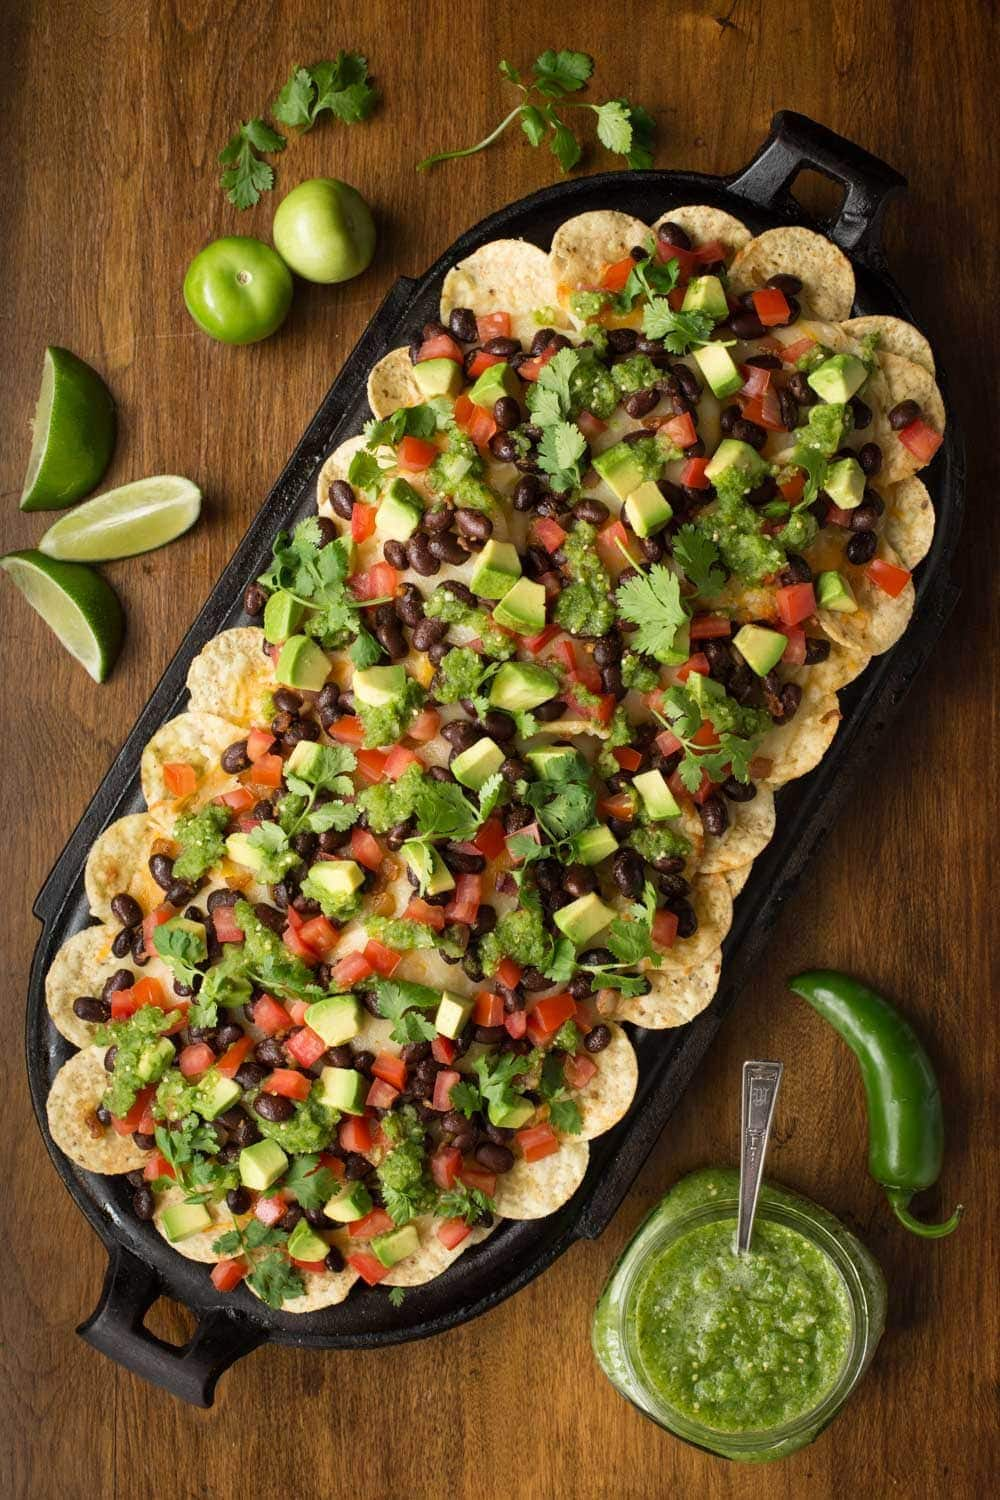 Overhead photo of a black oblong cast iron skillet with Black Bean Nachos with Salsa Verde surrounded by limes, tomatillos, peppers and lime wedges.